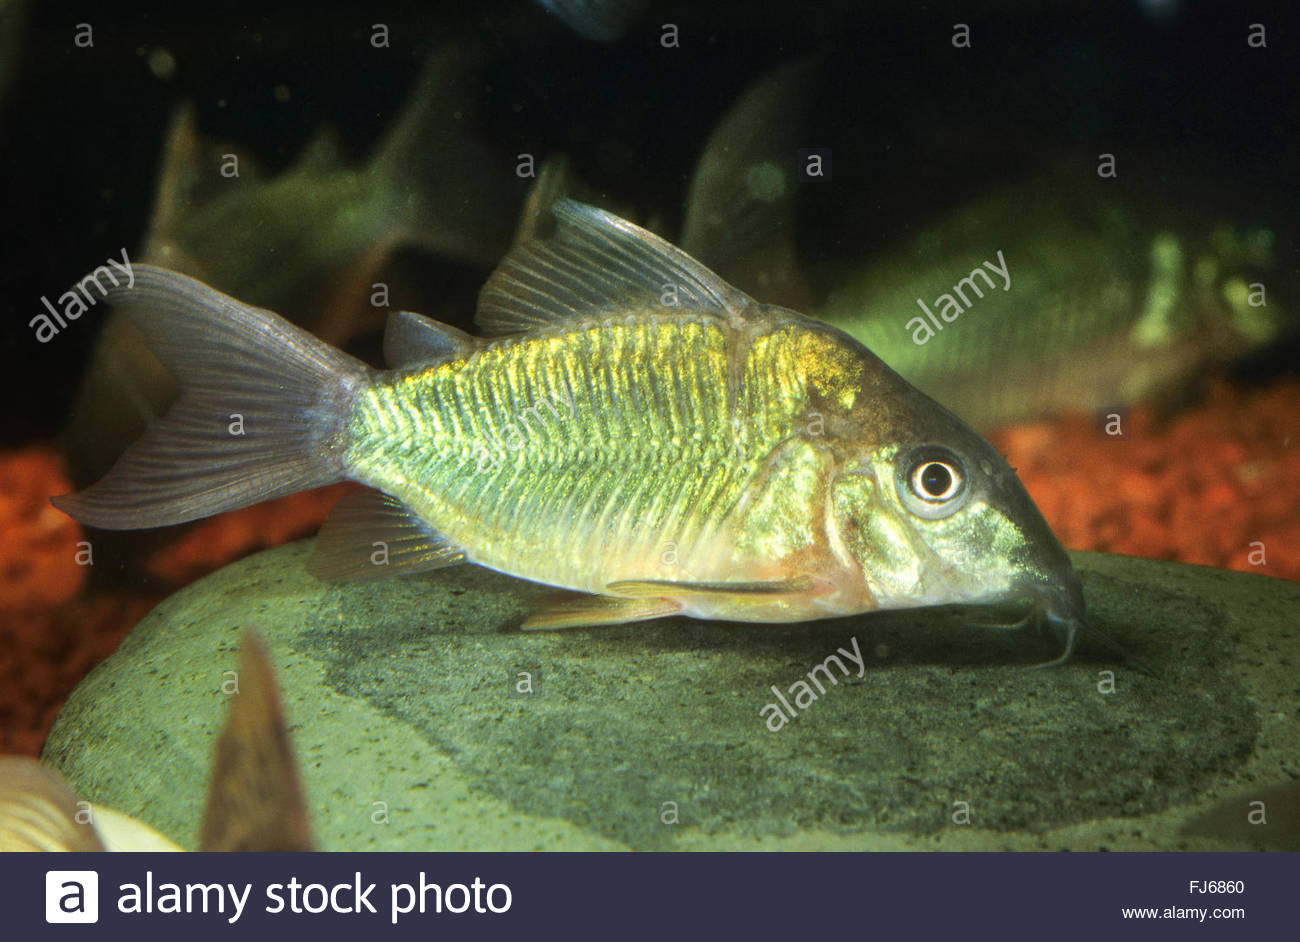 Catfish Fin Stock Photos & Catfish Fin Stock Images.